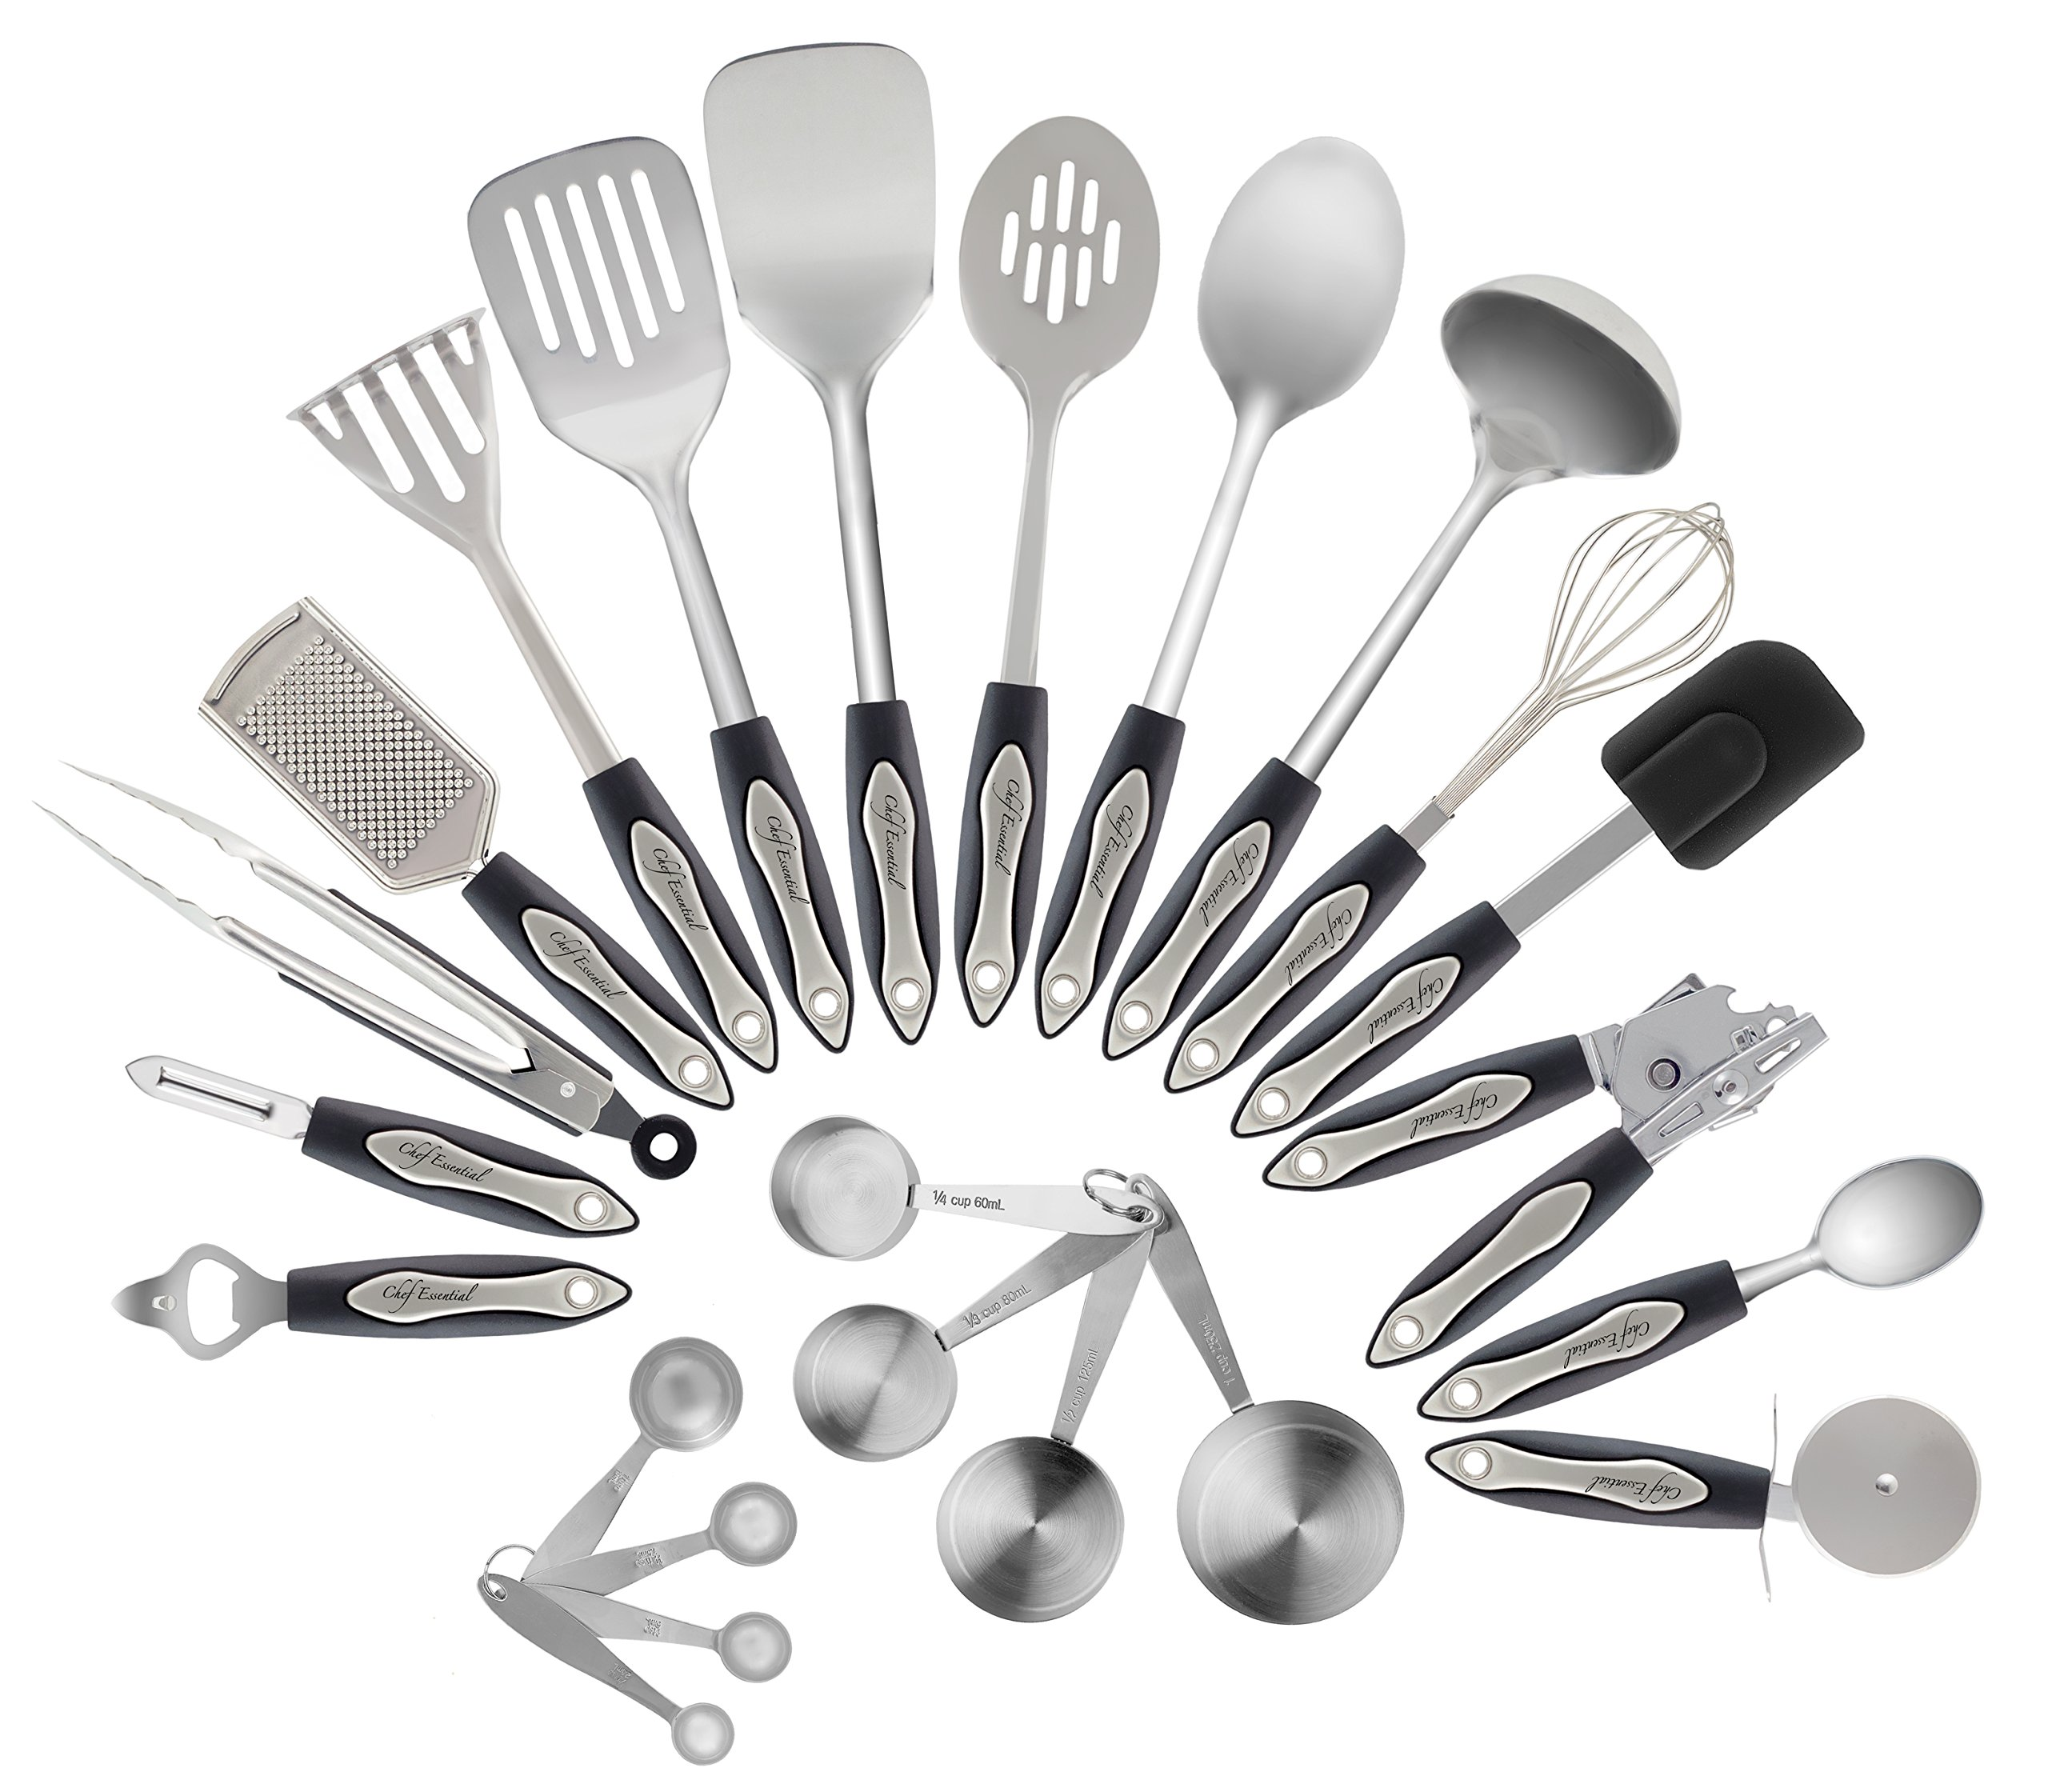 Stainless Steel Kitchen Utensil Set, 23-Pc Set, Everything You Need For Cooking Included, Material, Great Gift Idea For Your Loved One.